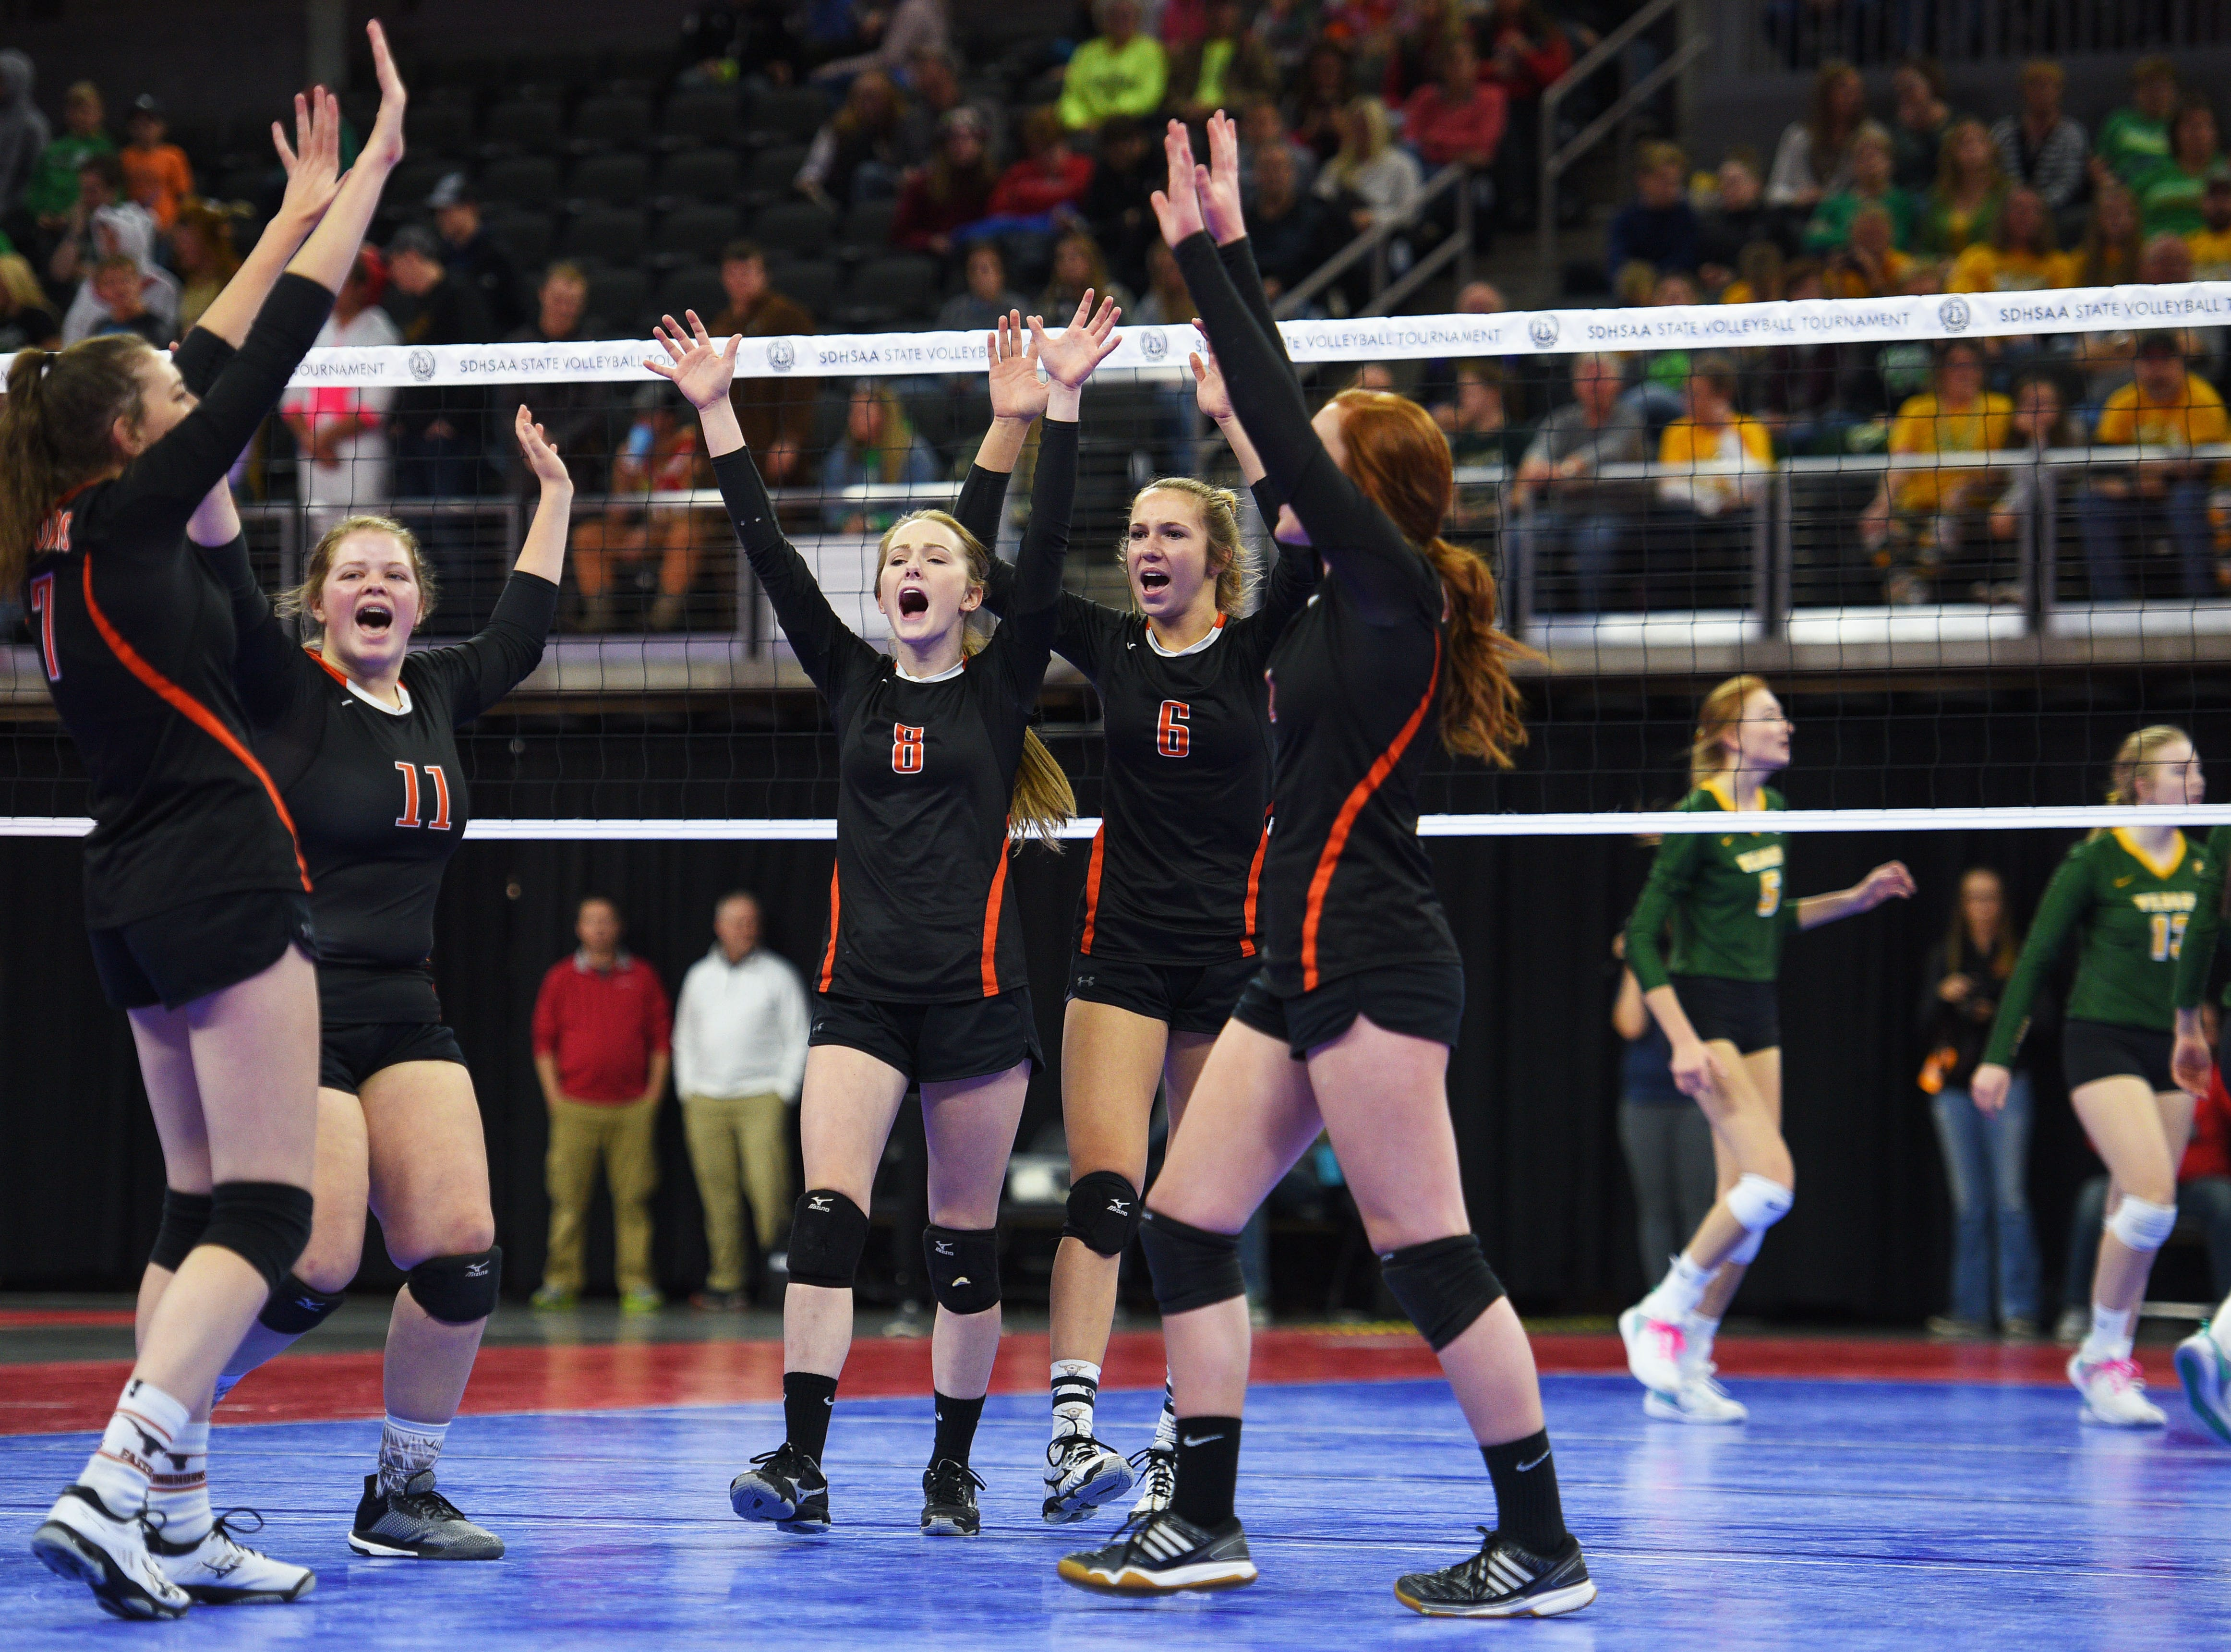 Faith celebrates in the game against Northwester during the semifinals Friday, Nov. 16, at the Denny Sanford Premier Center in Sioux Falls.